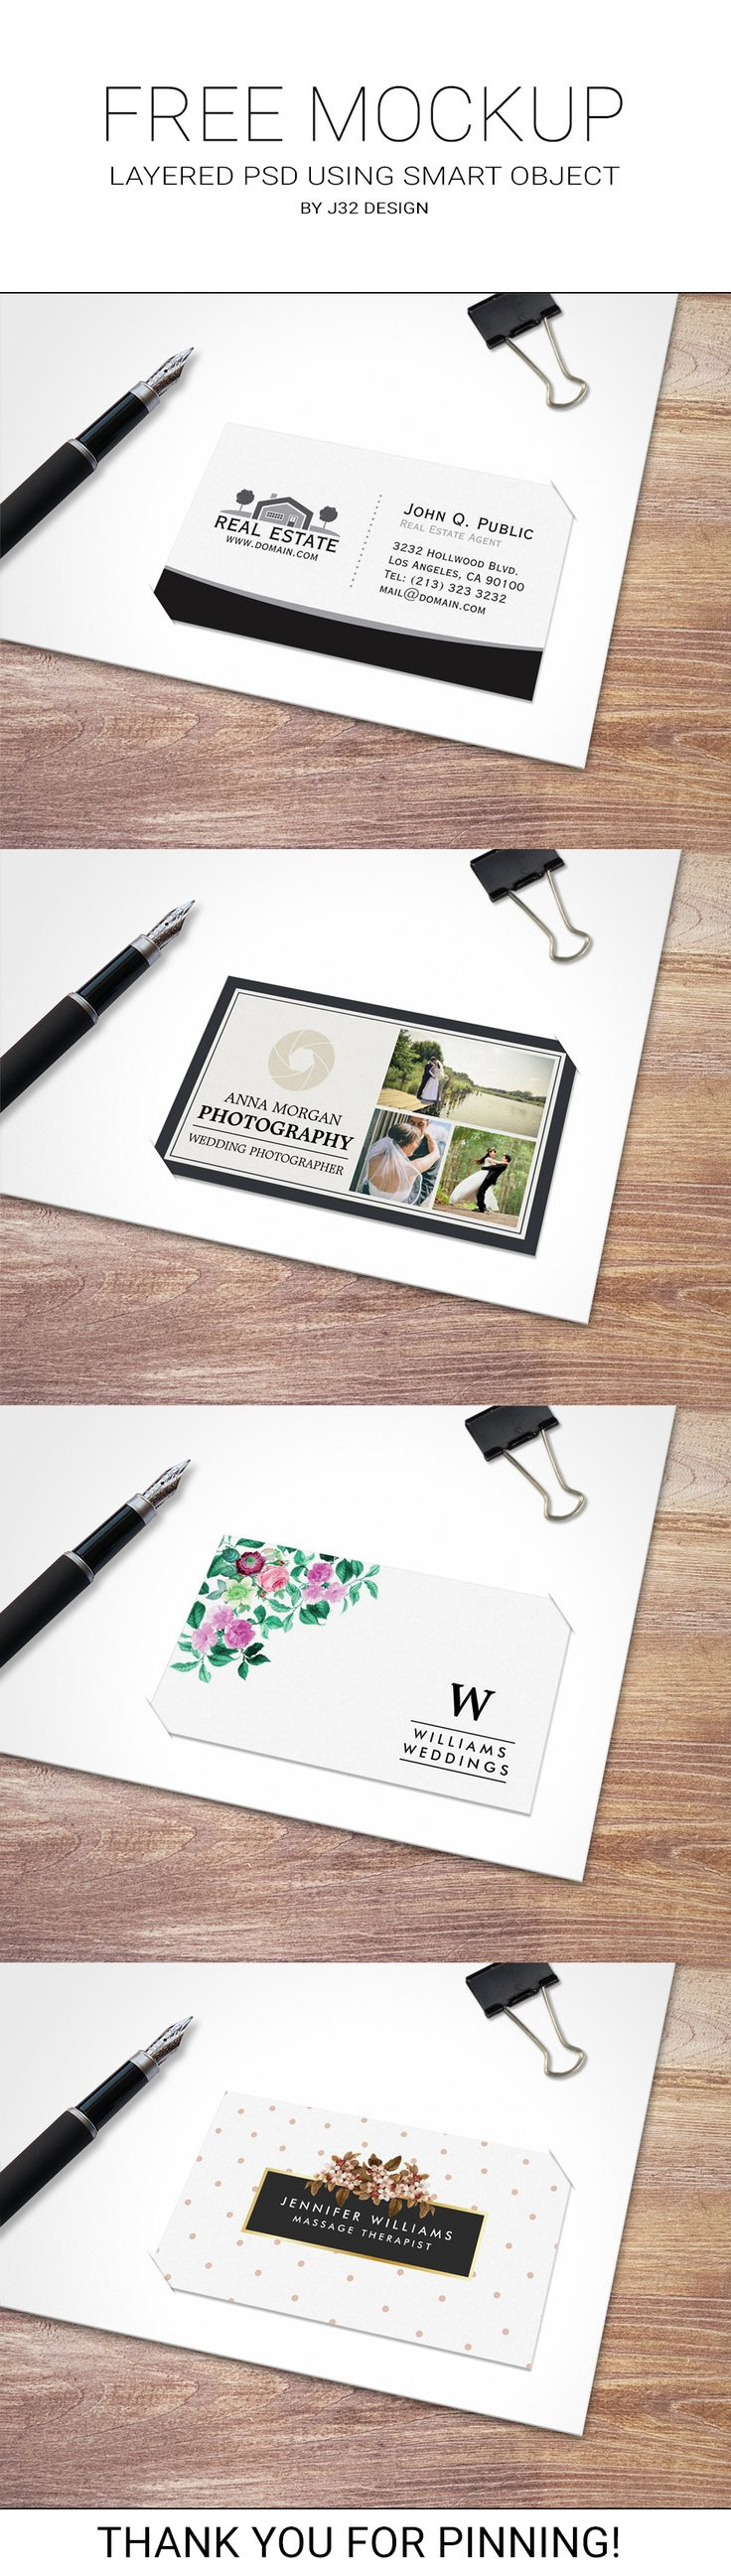 Best 25 free business cards ideas on pinterest free business free business card mockup by j32 design download this great freebie at j32design magicingreecefo Choice Image